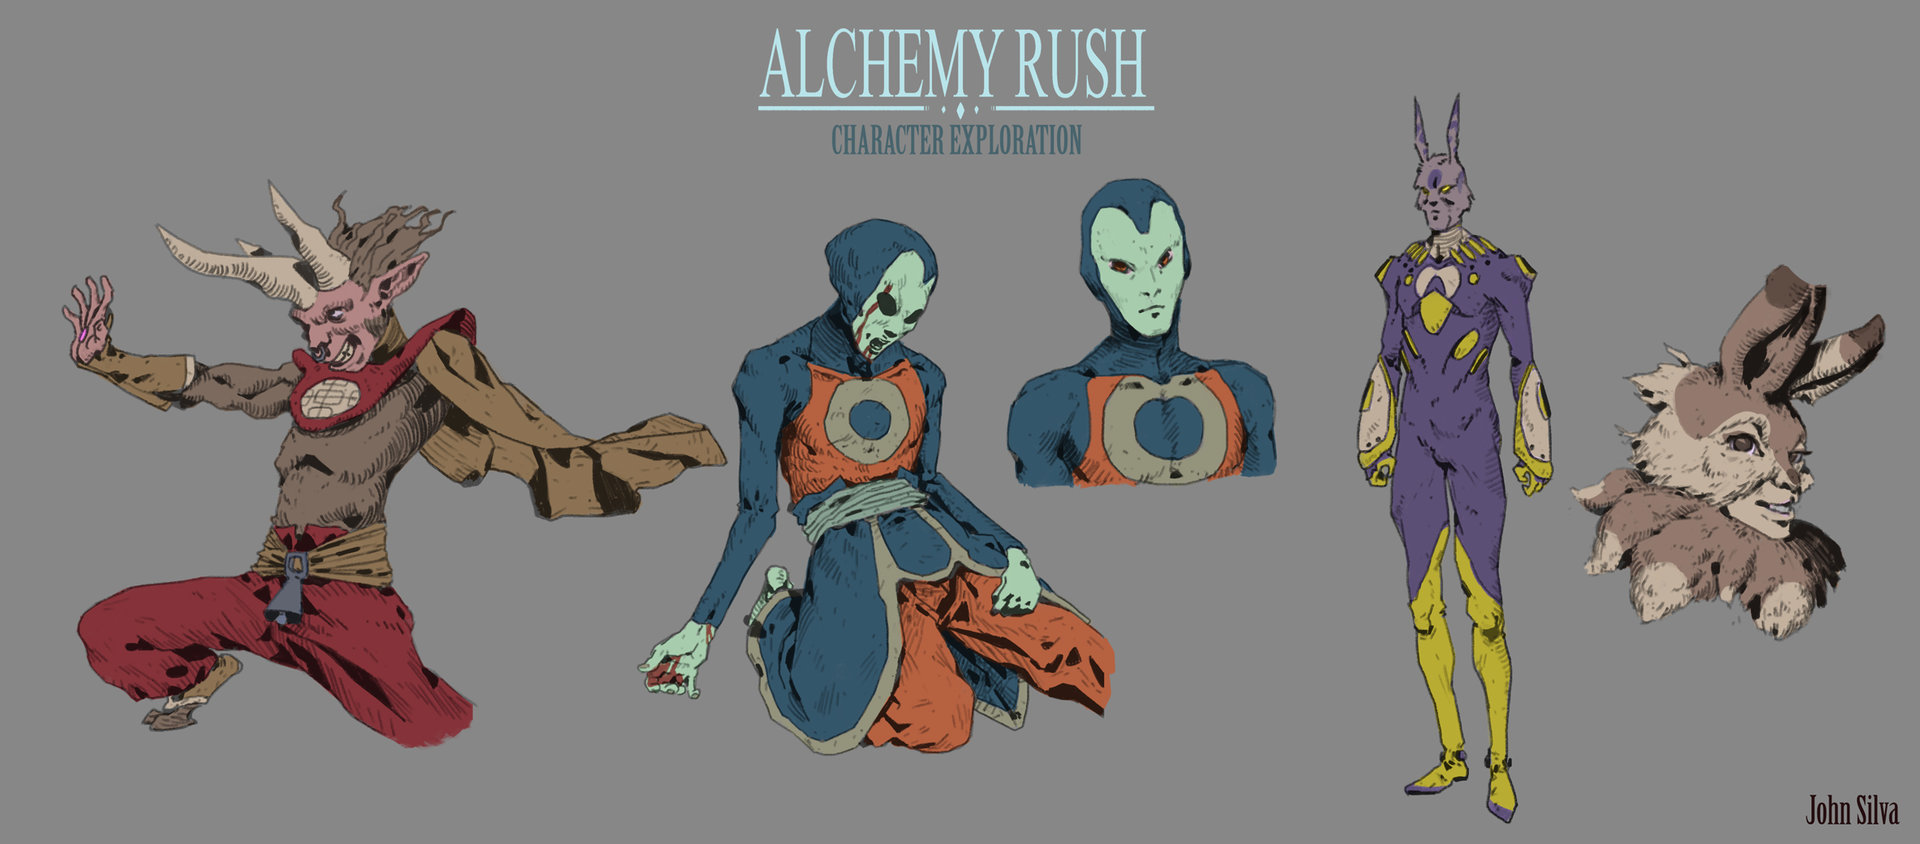 John silva alchemy rush character exploration 1